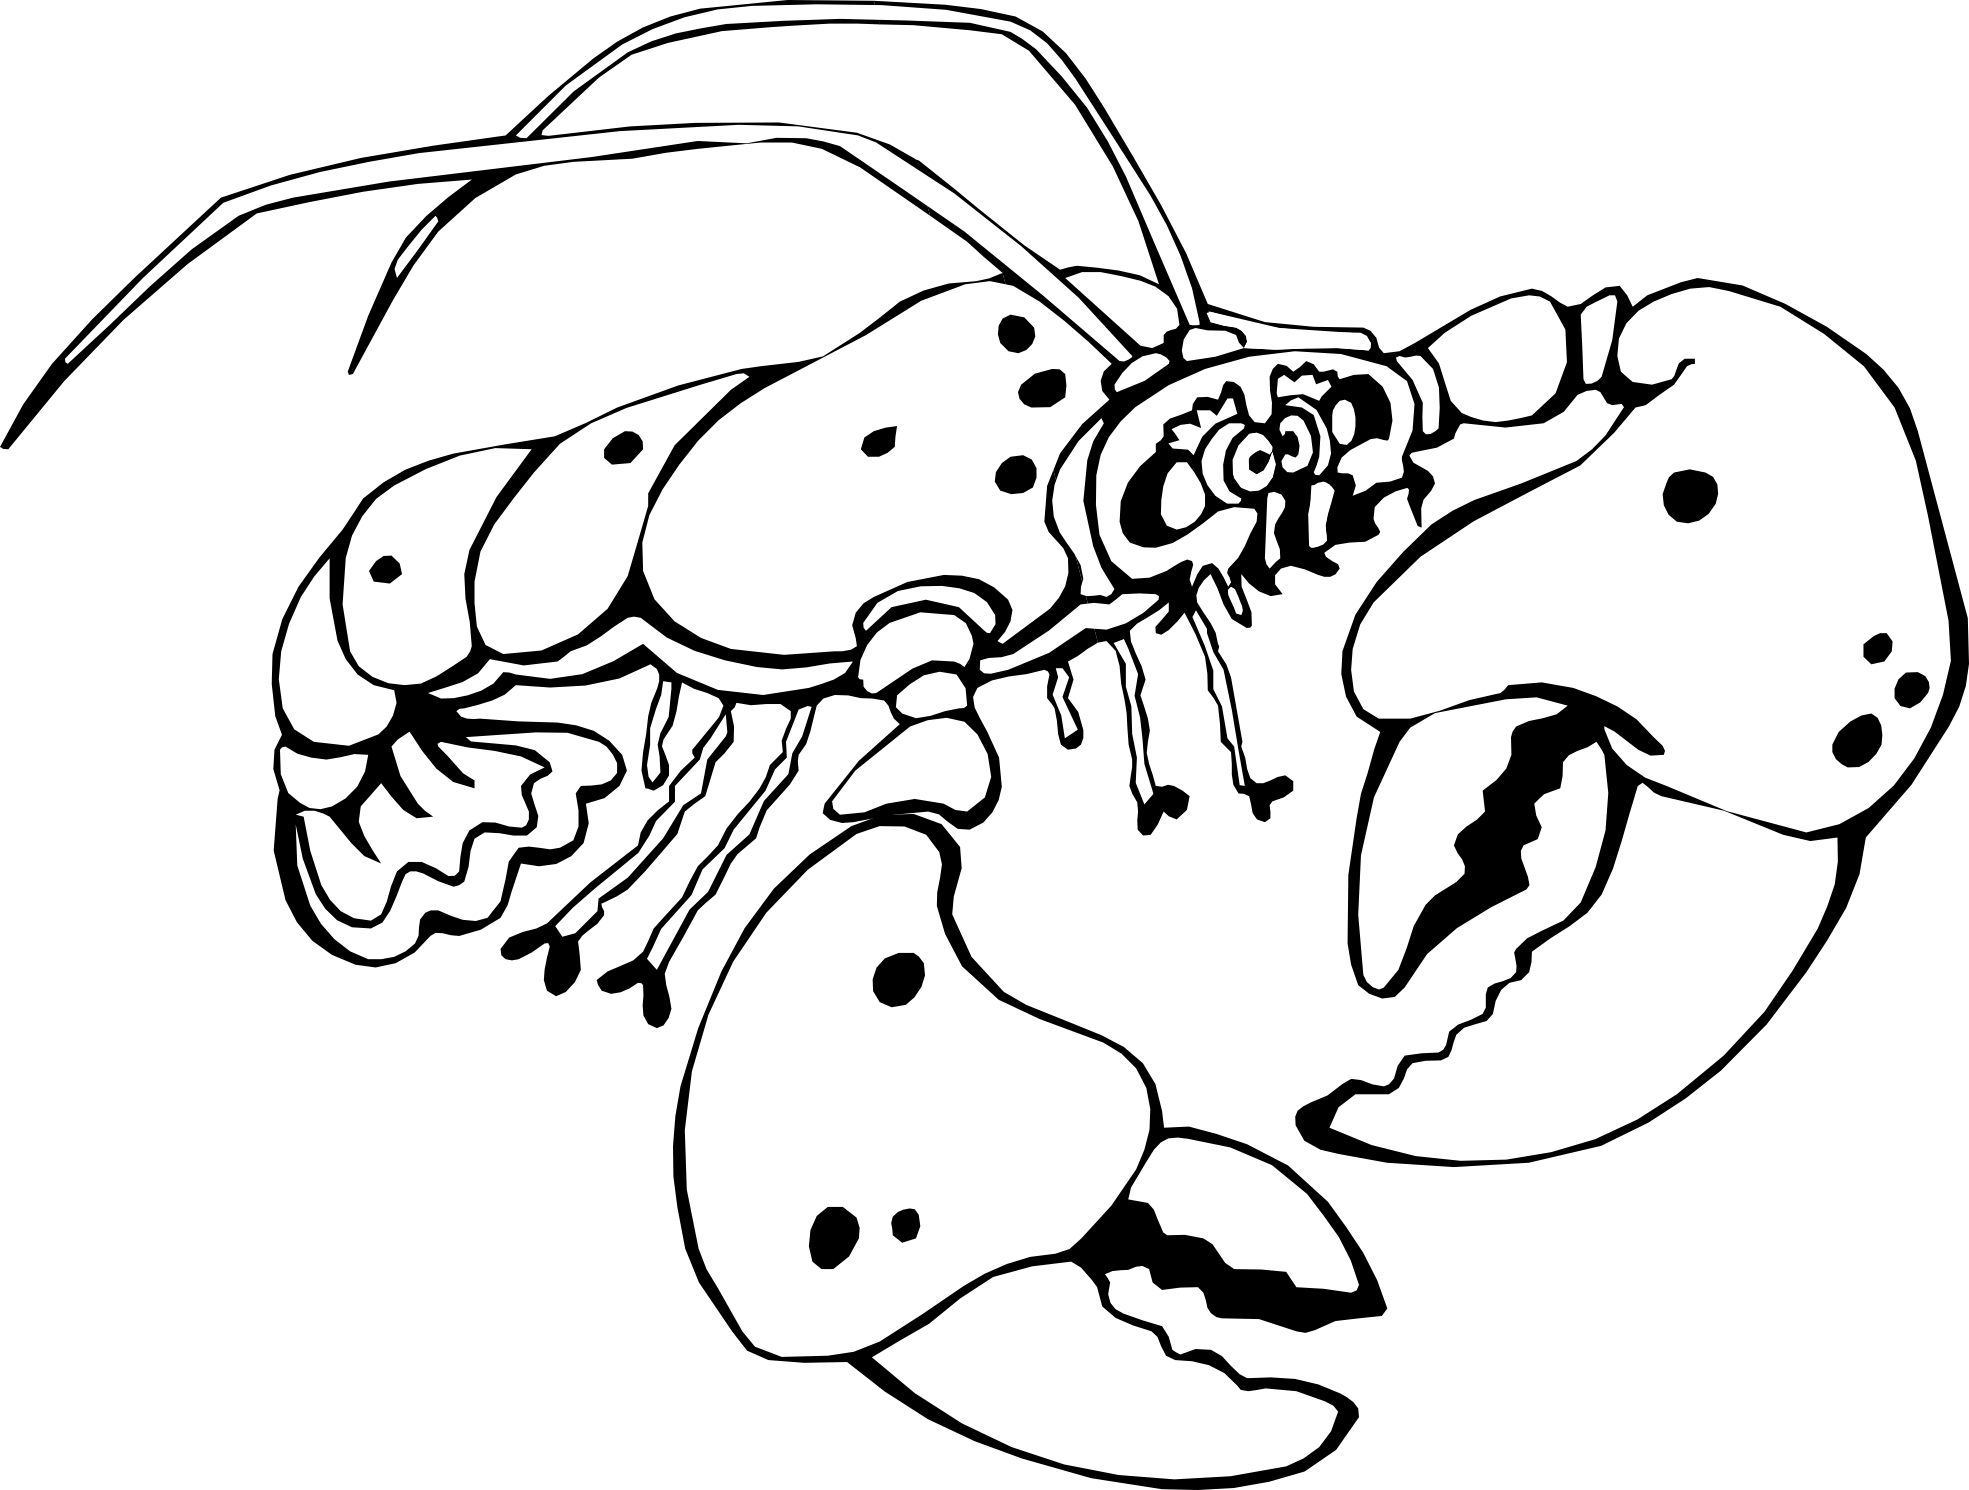 lobster clipart black and white - Lobster PNG Black And White